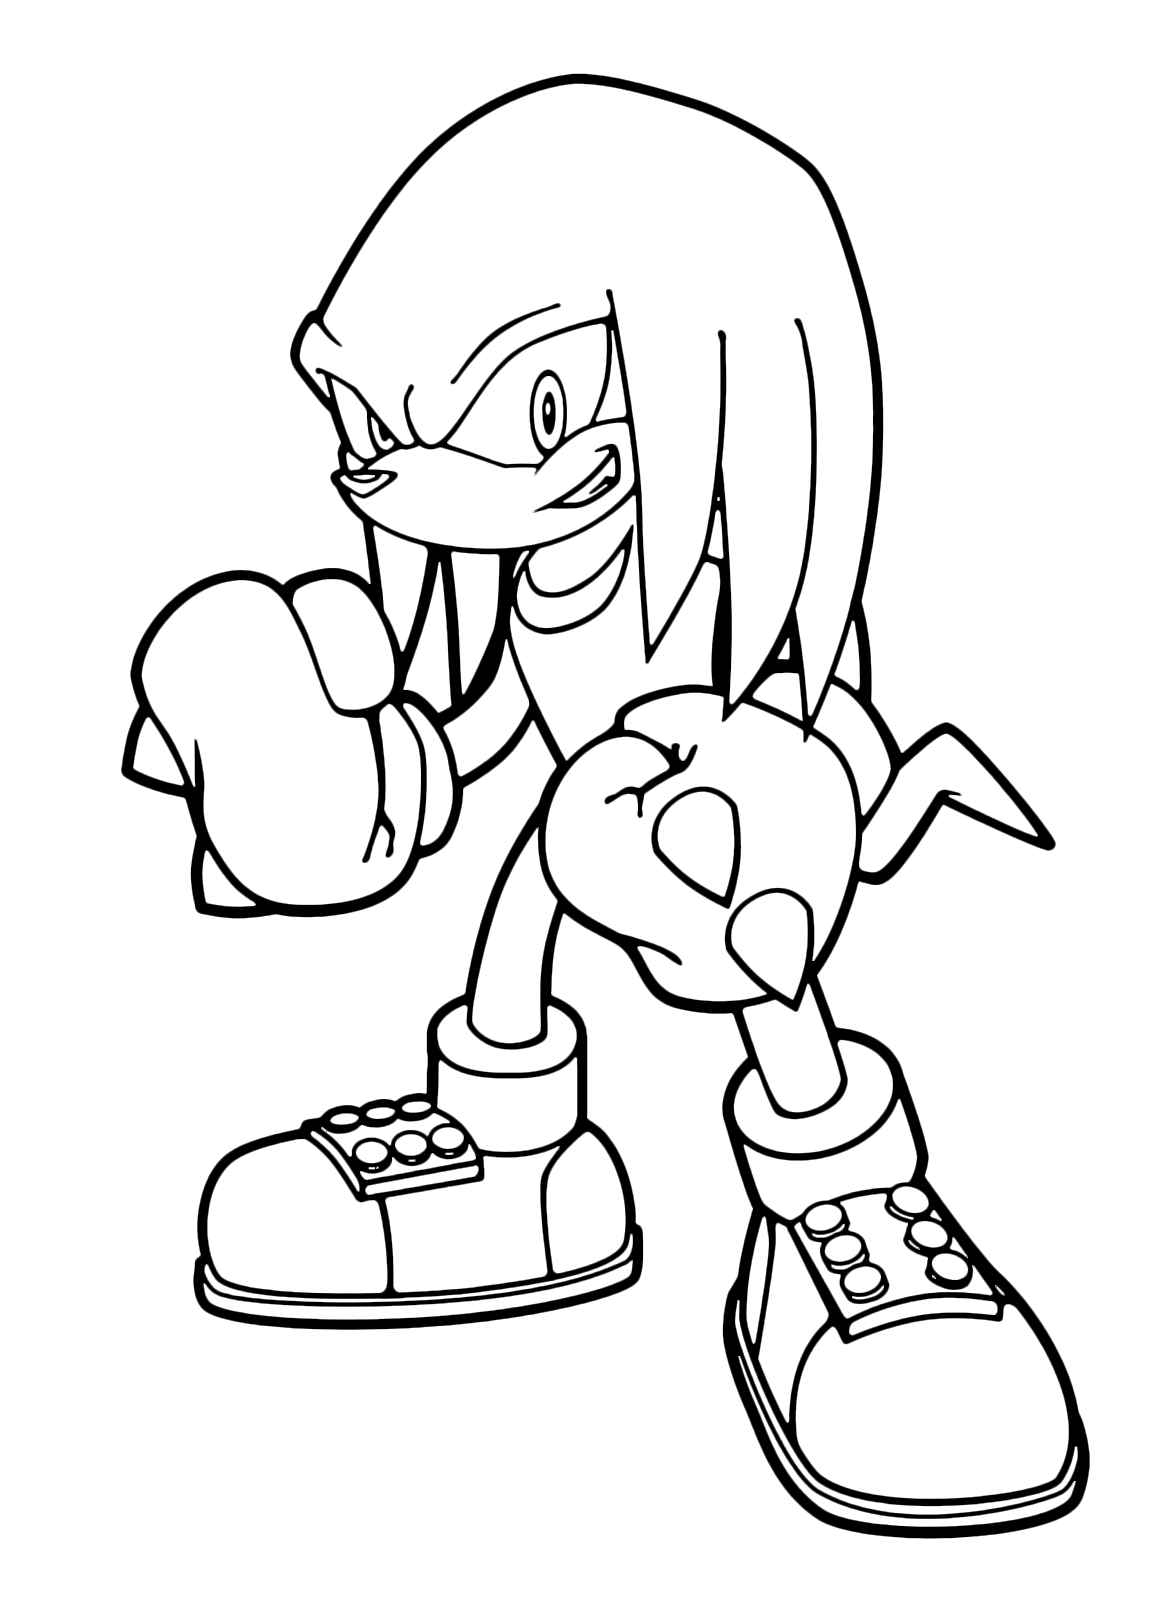 coloring pages to print sonic characters knuckles | Sonic Boom - Knuckles the Echidna with his thorny fists